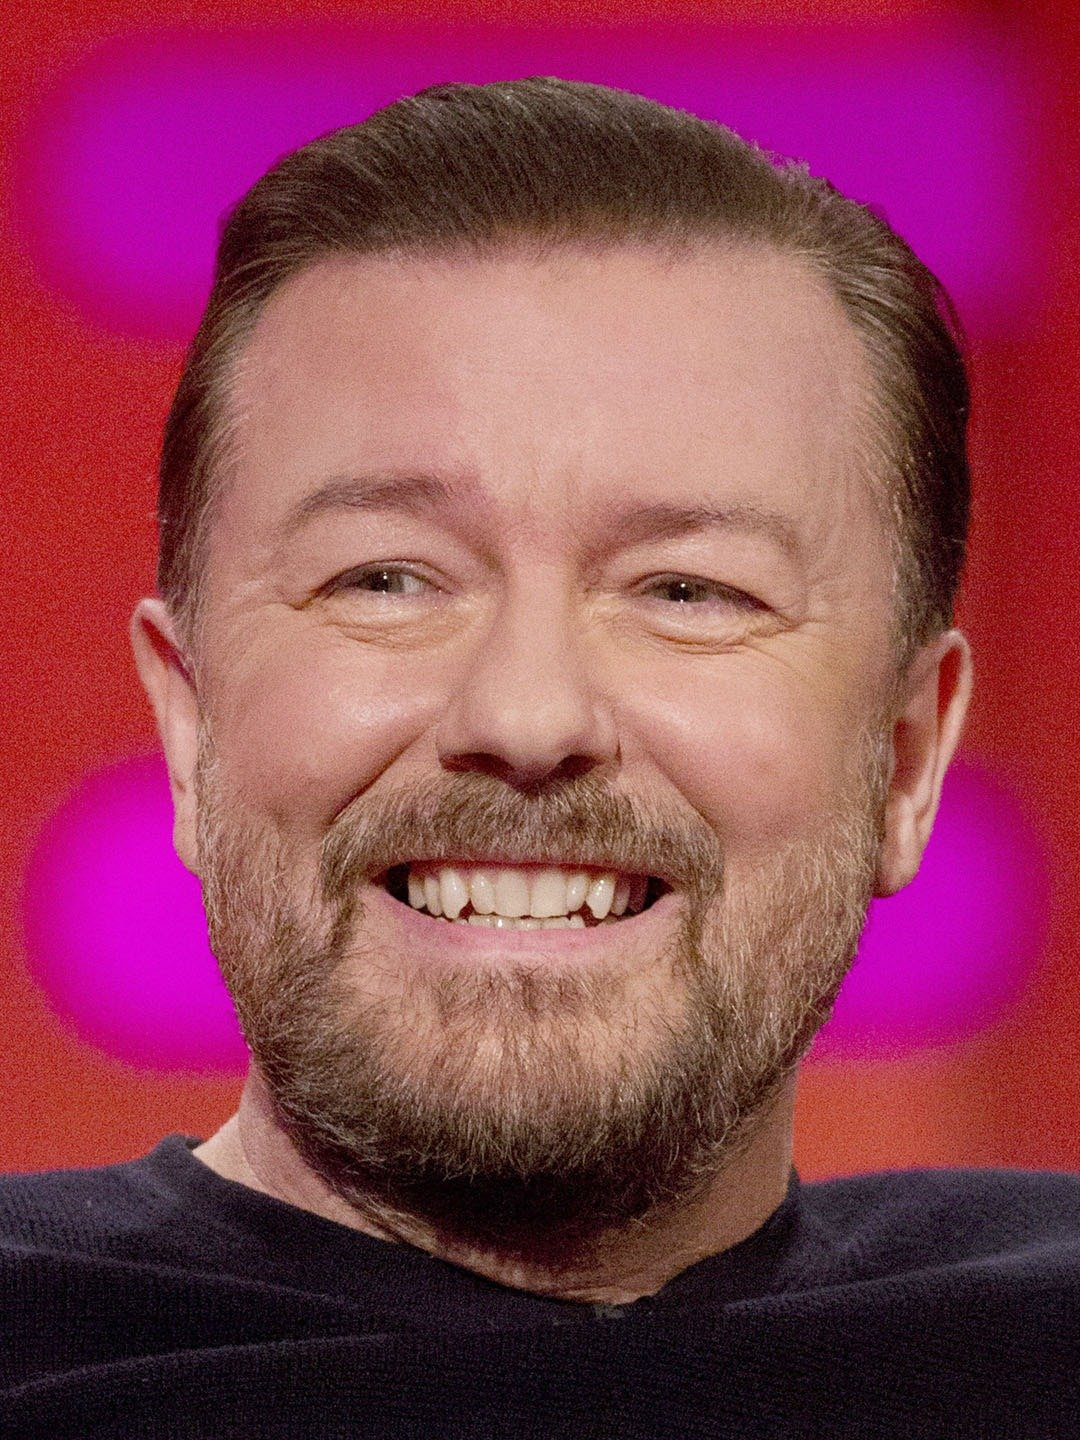 How tall is Ricky Gervais?